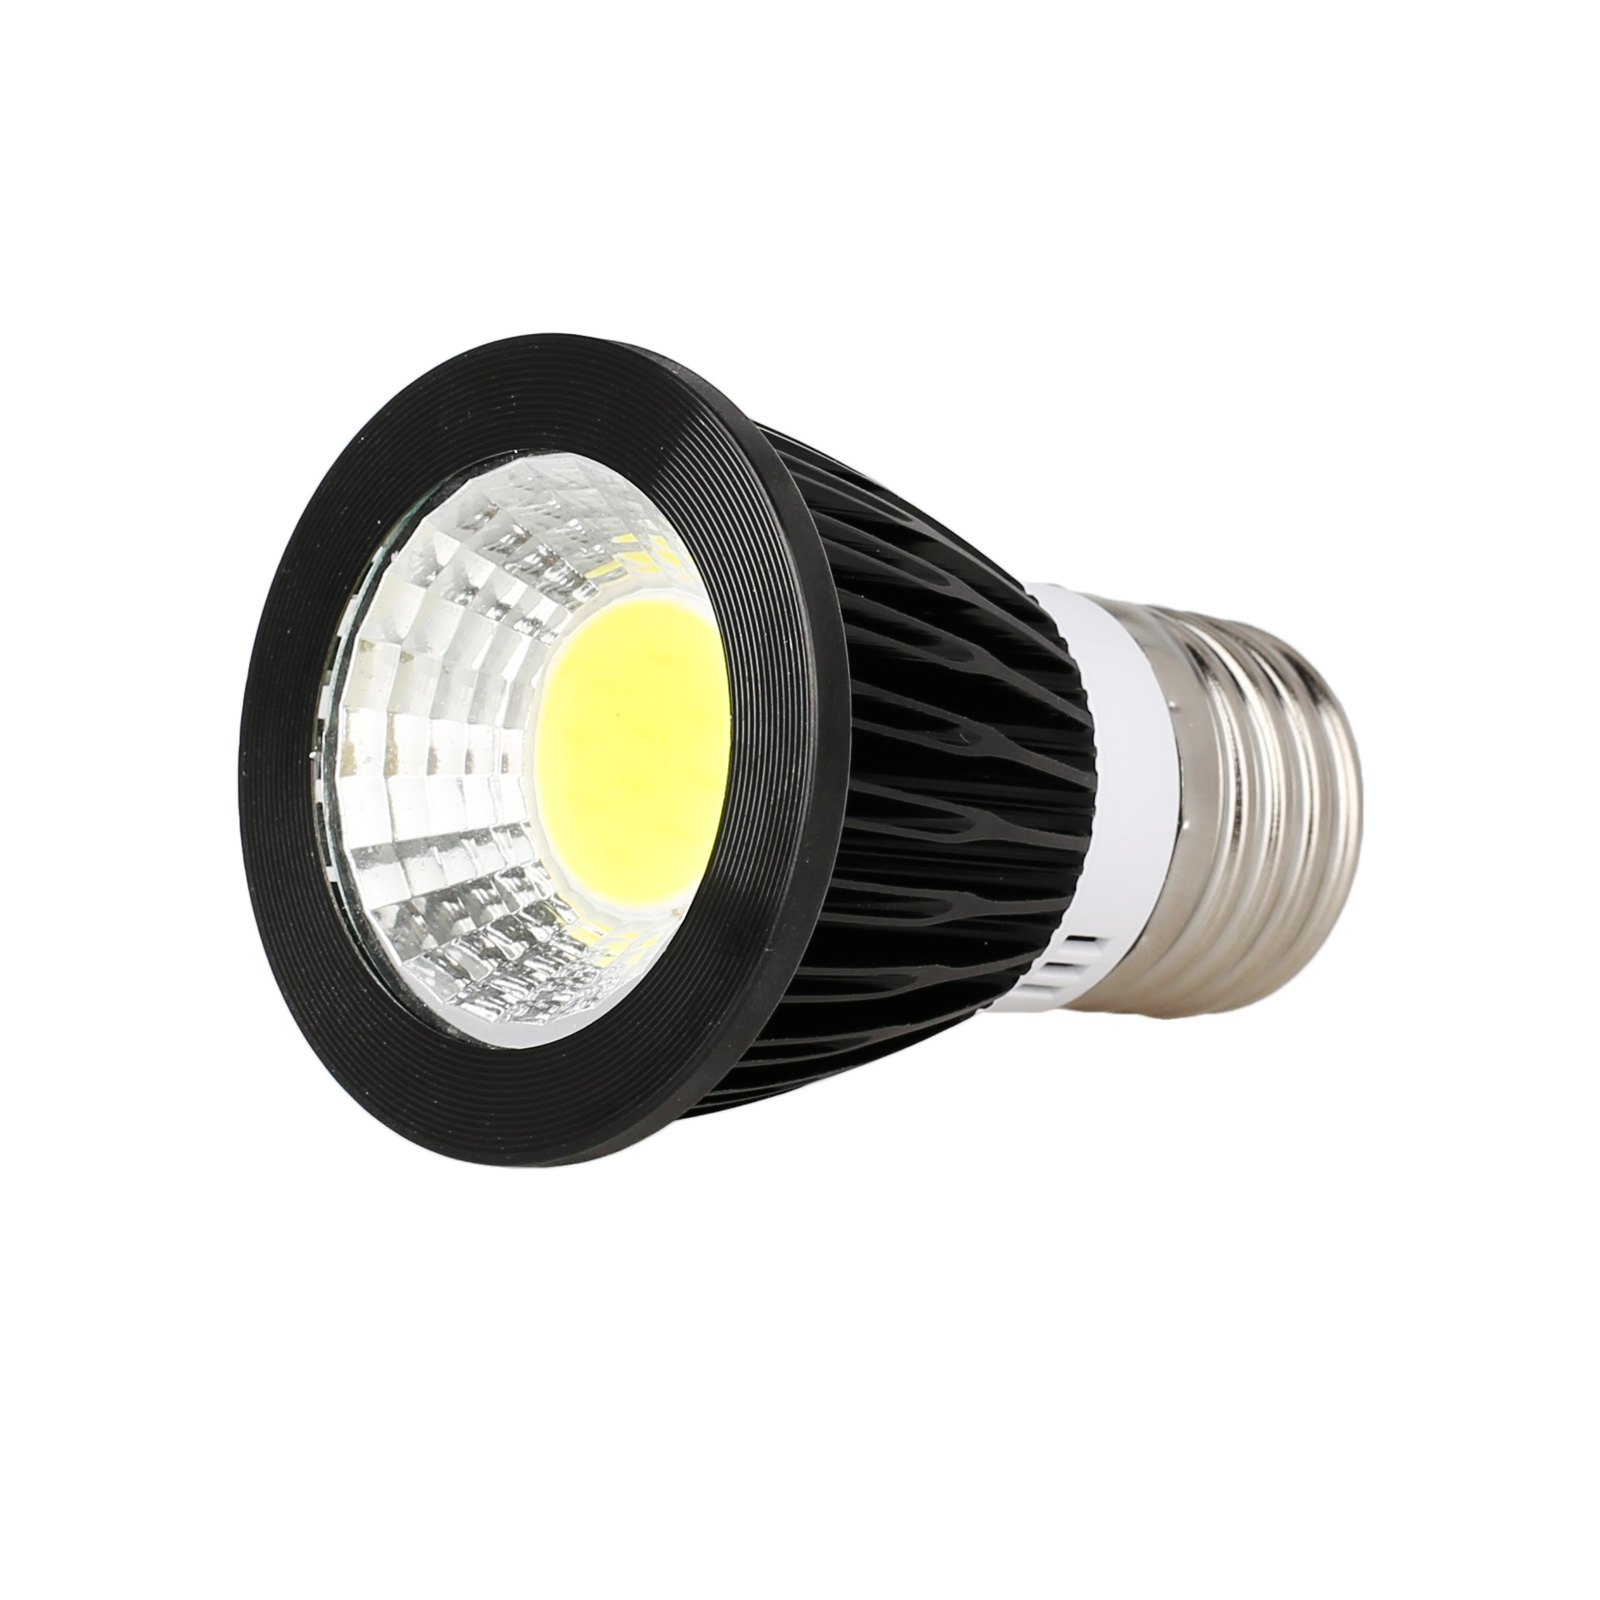 Ultra Bright Mr16 Gu10 E27 E14 Dimmable 6w 9w 12w Led Cob Spot Light Bulbs Cree E27 Es E14 Gu10 Dimmable Led Spot Lights 6w 9w 12w Cob